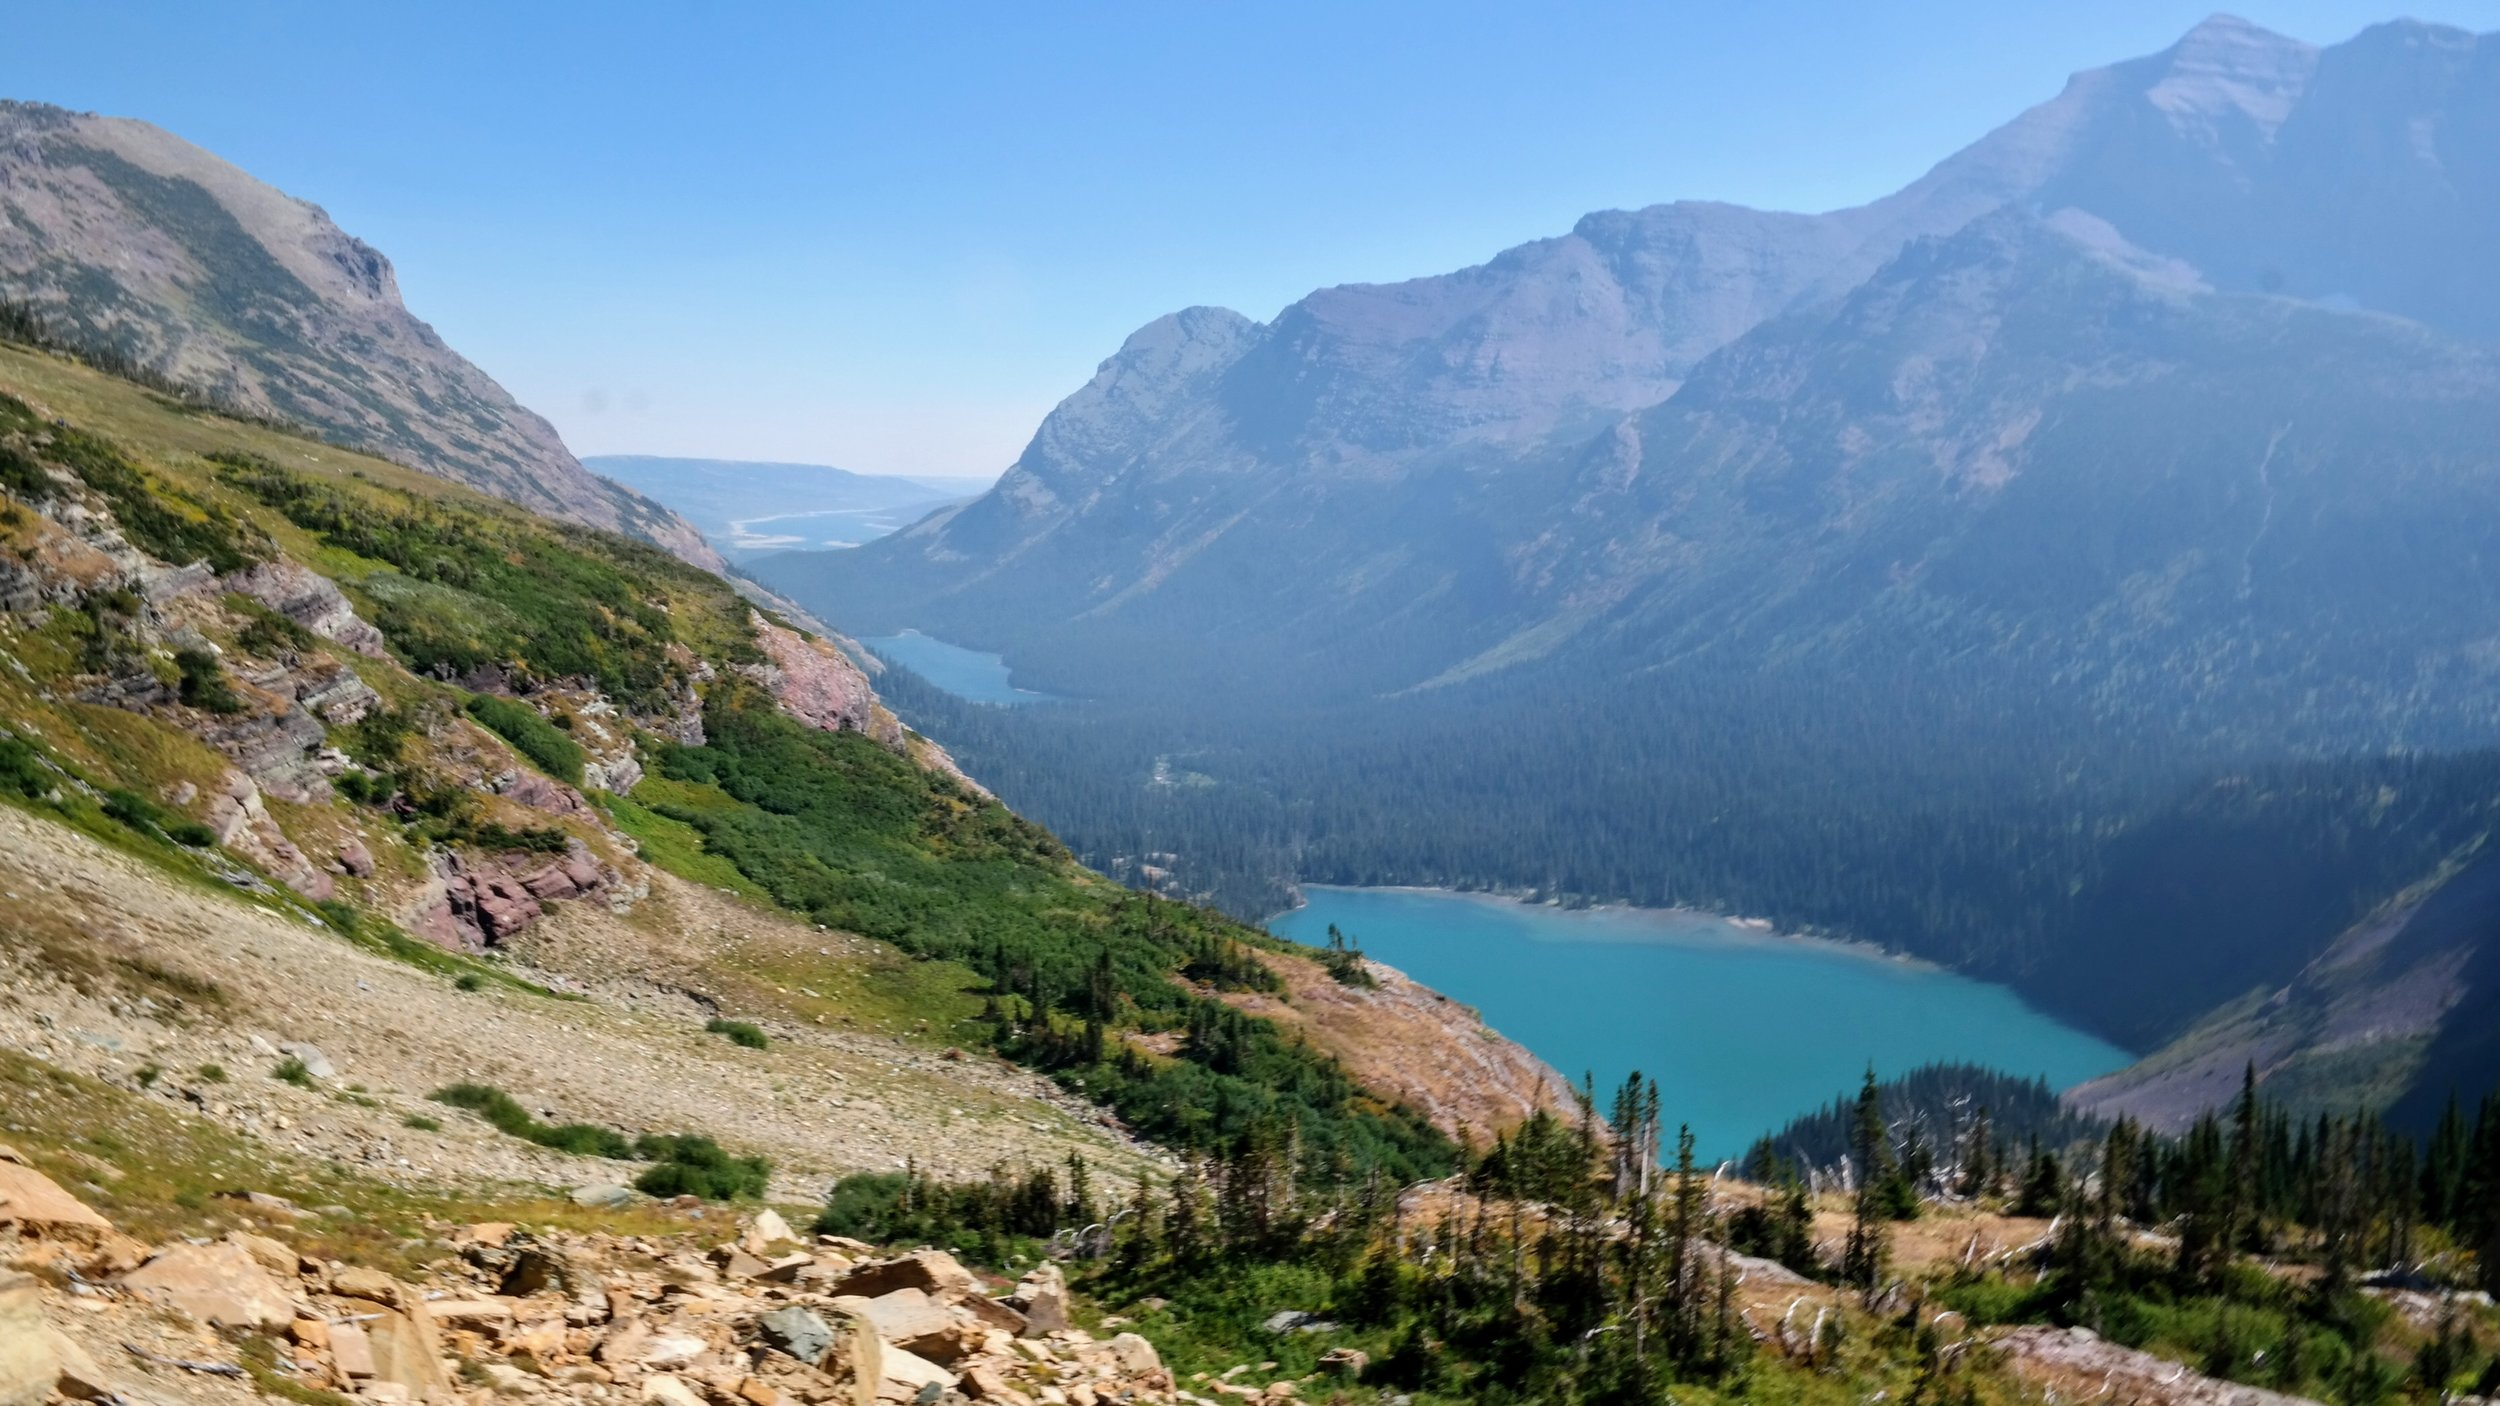 A view of lower Grinnell Lake looking back down the trail. Lake Josephine in the background.